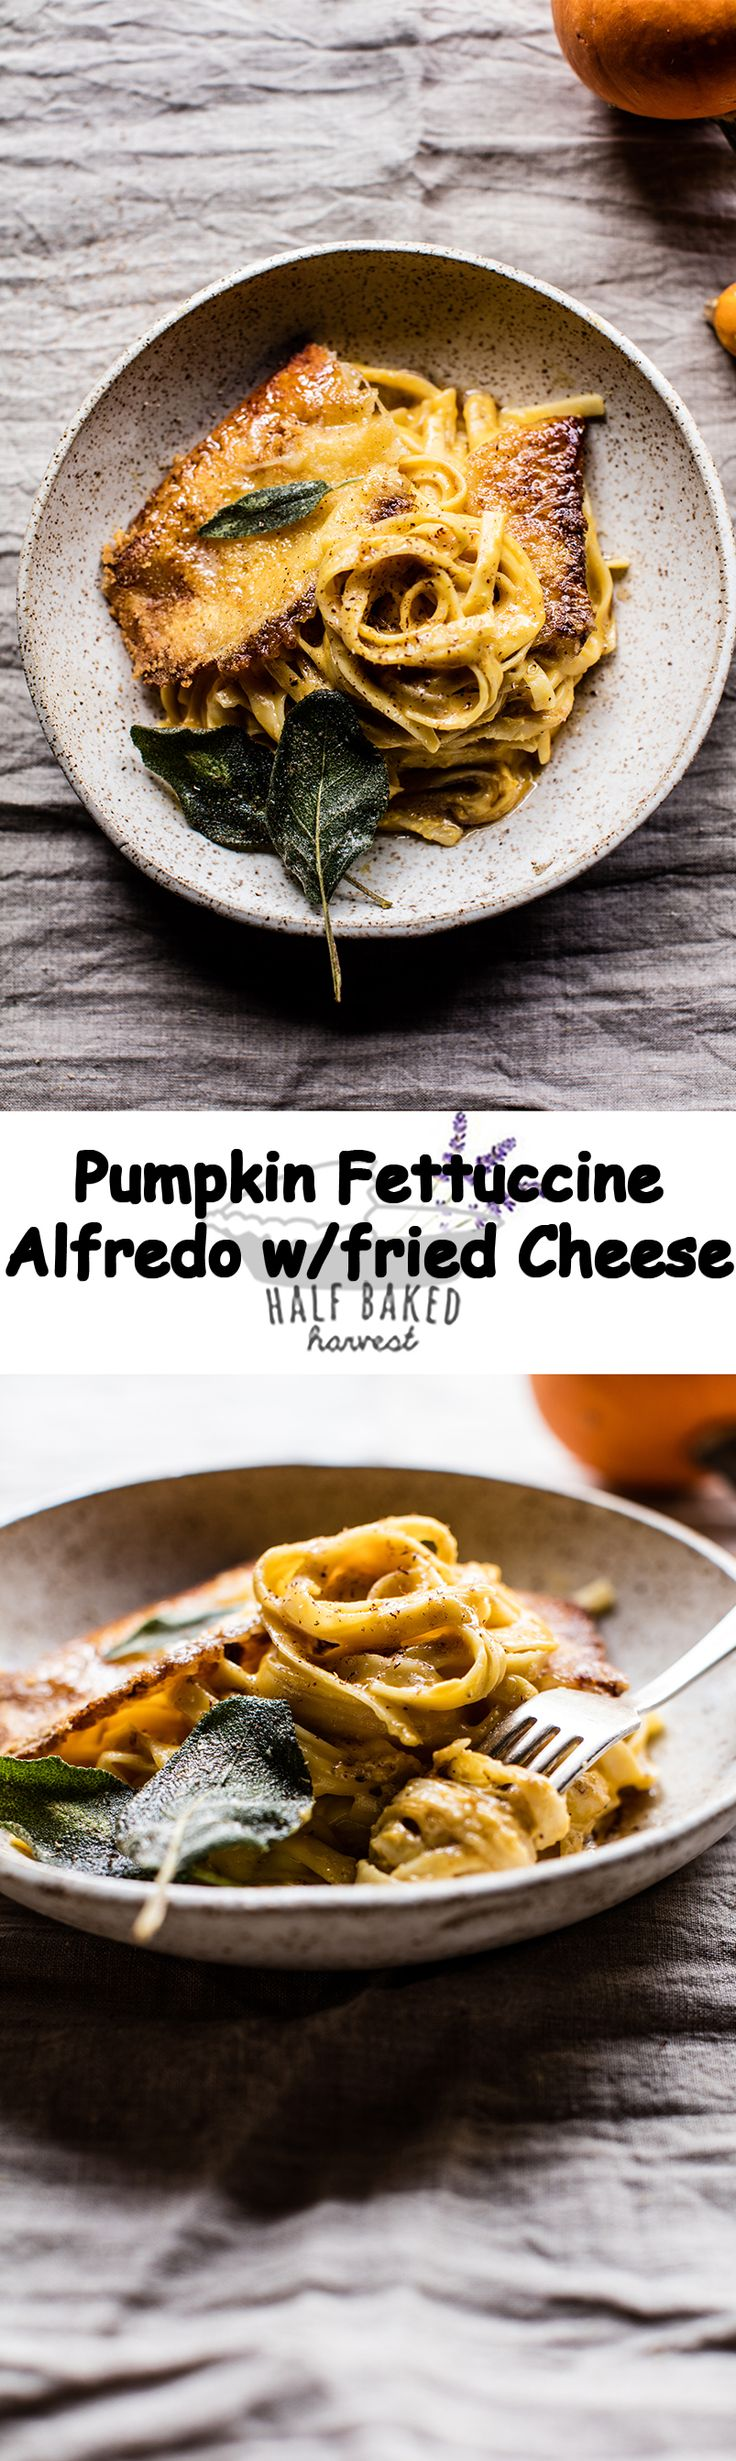 Brown Butter Pumpkin Fettuccine Alfredo with Fried Cheese | Recipe